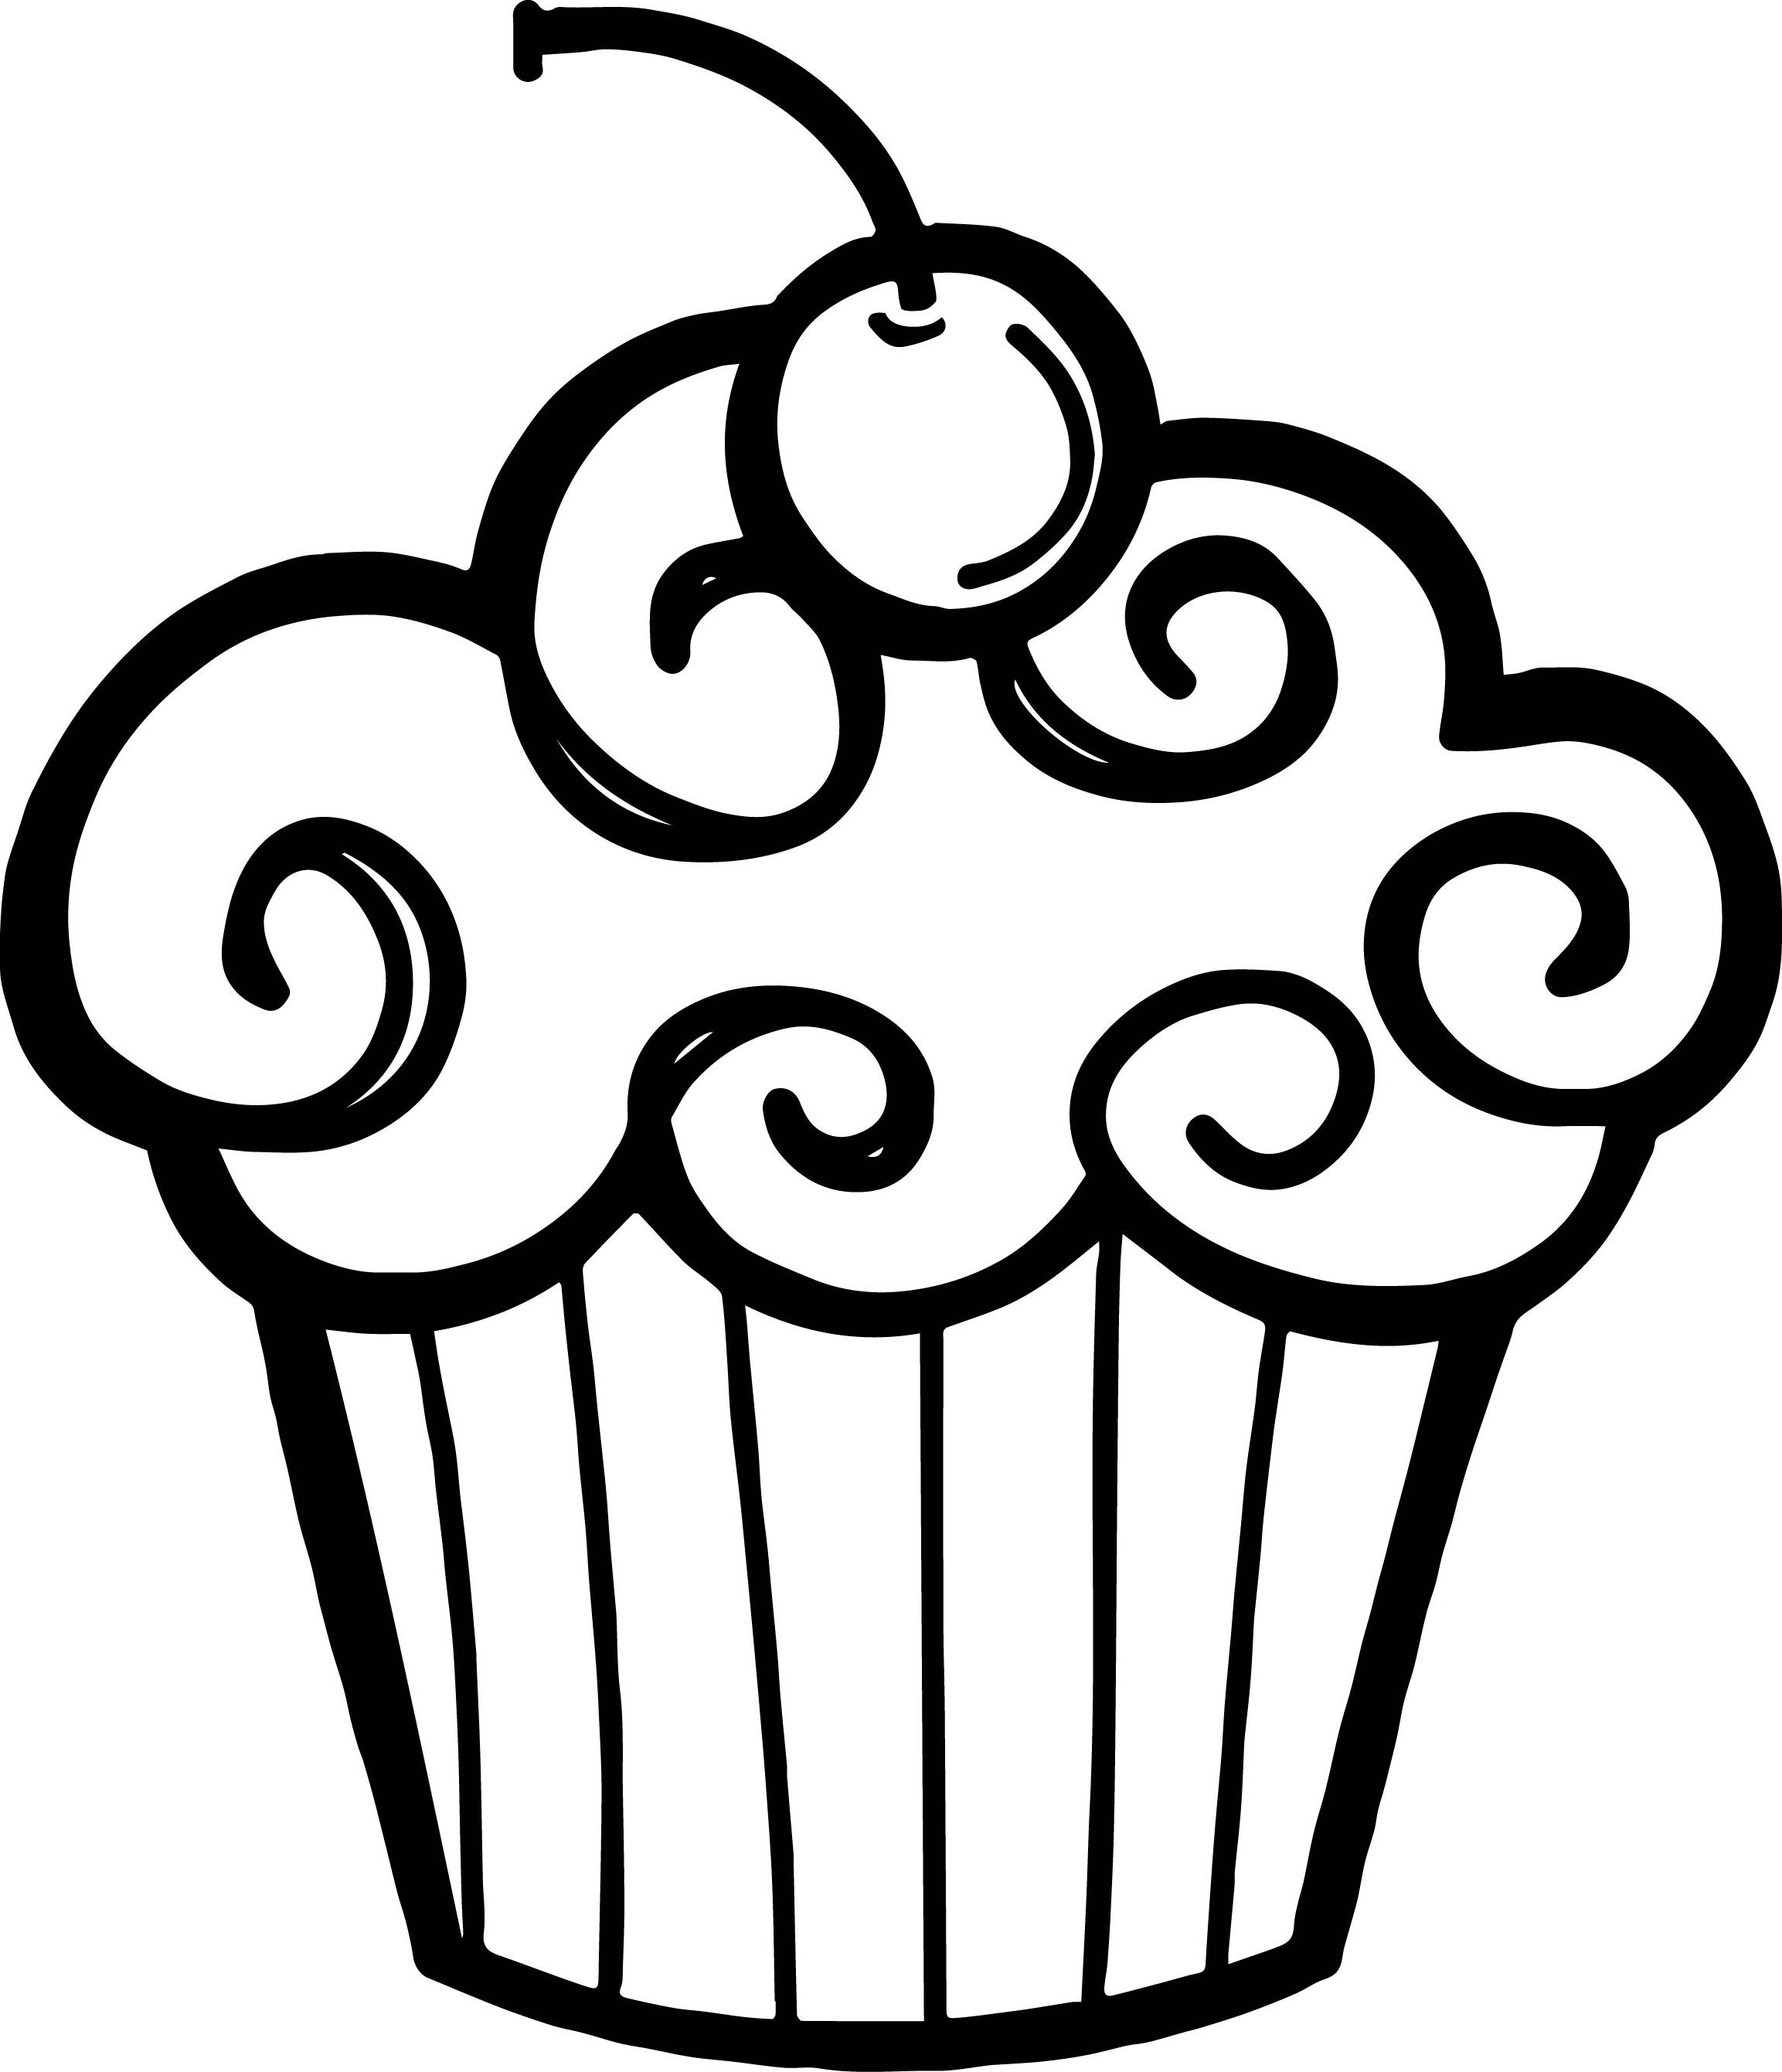 Cupcake clipart free black and white vector freeuse stock Free Cupcake Clipart Black And White | Free download best Free ... vector freeuse stock